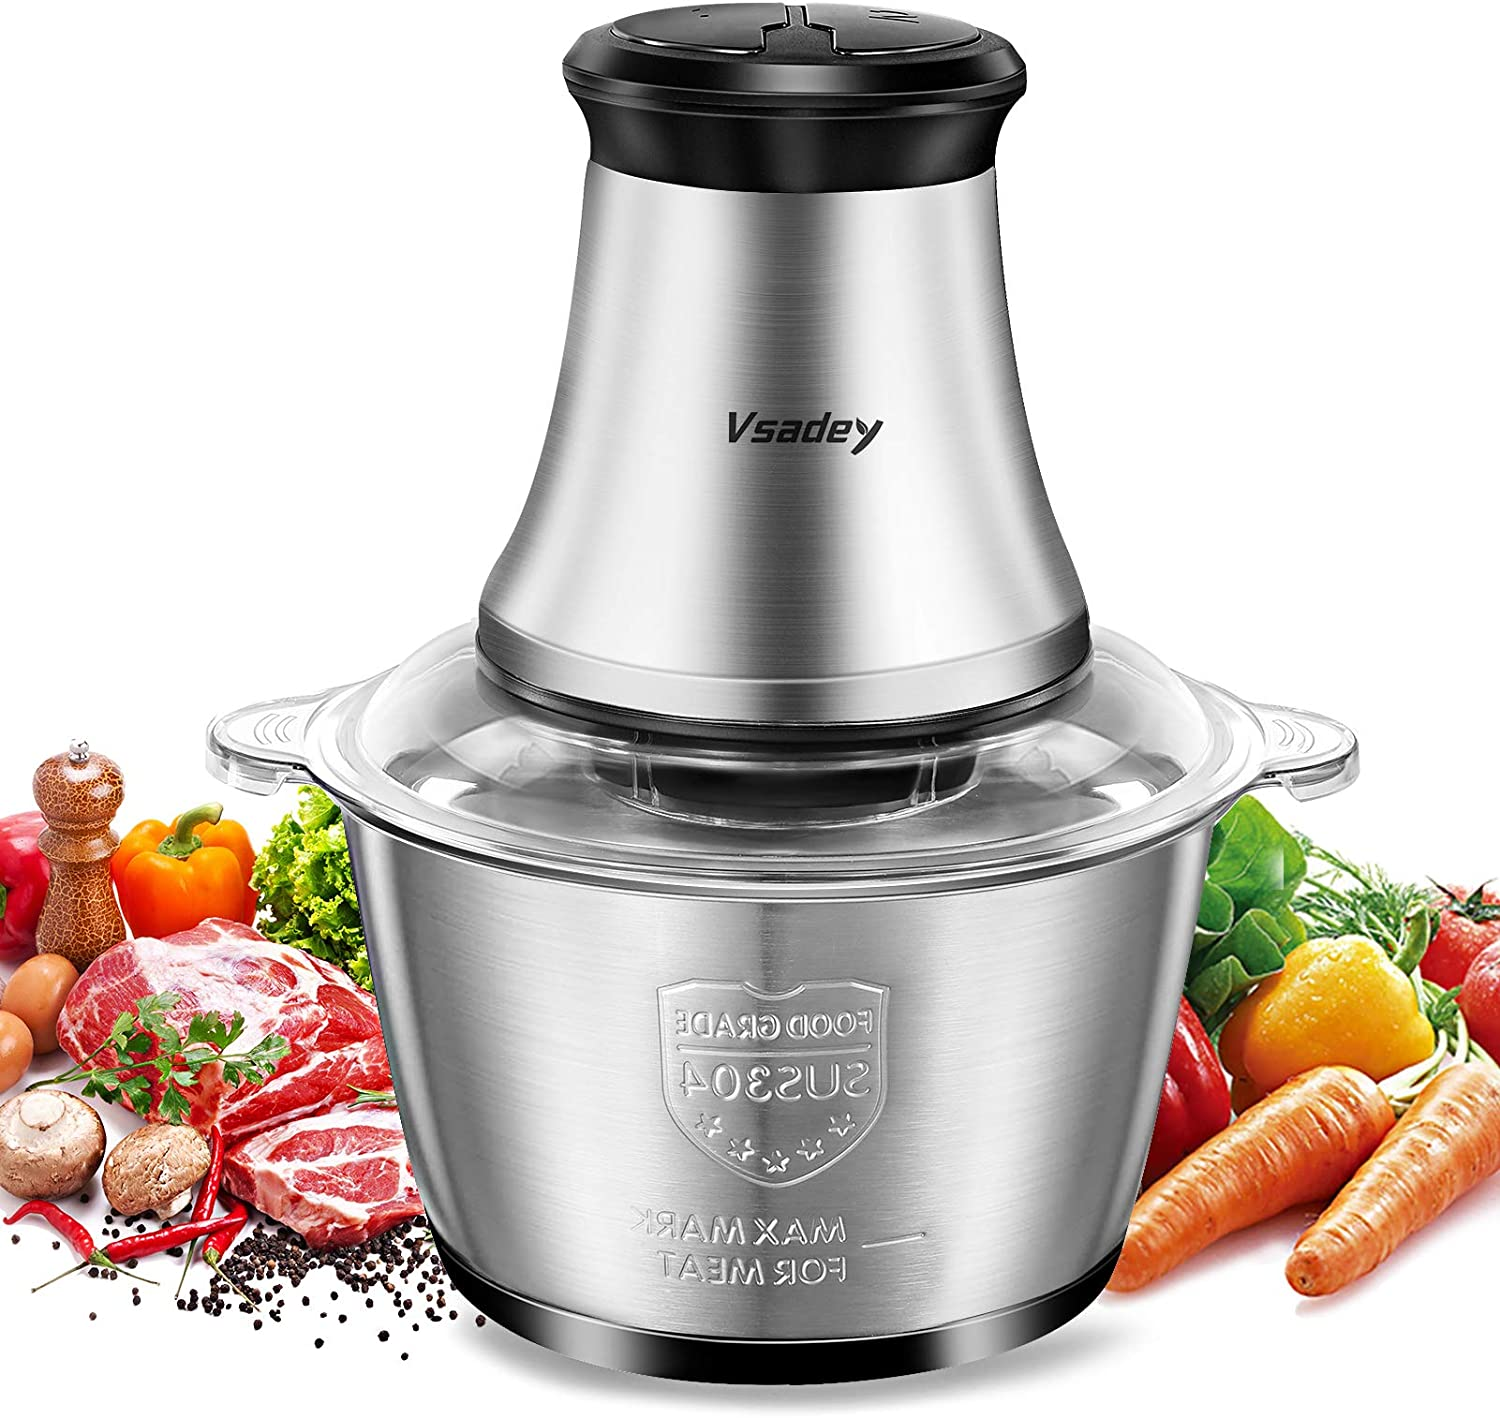 Vsadey Food Processor 8 Cup Electric Meat Grinder for Meat Vegetable Fruits Nut Herbs Blender with Stainless Steel Bowl,4 Sharp Blades,350W